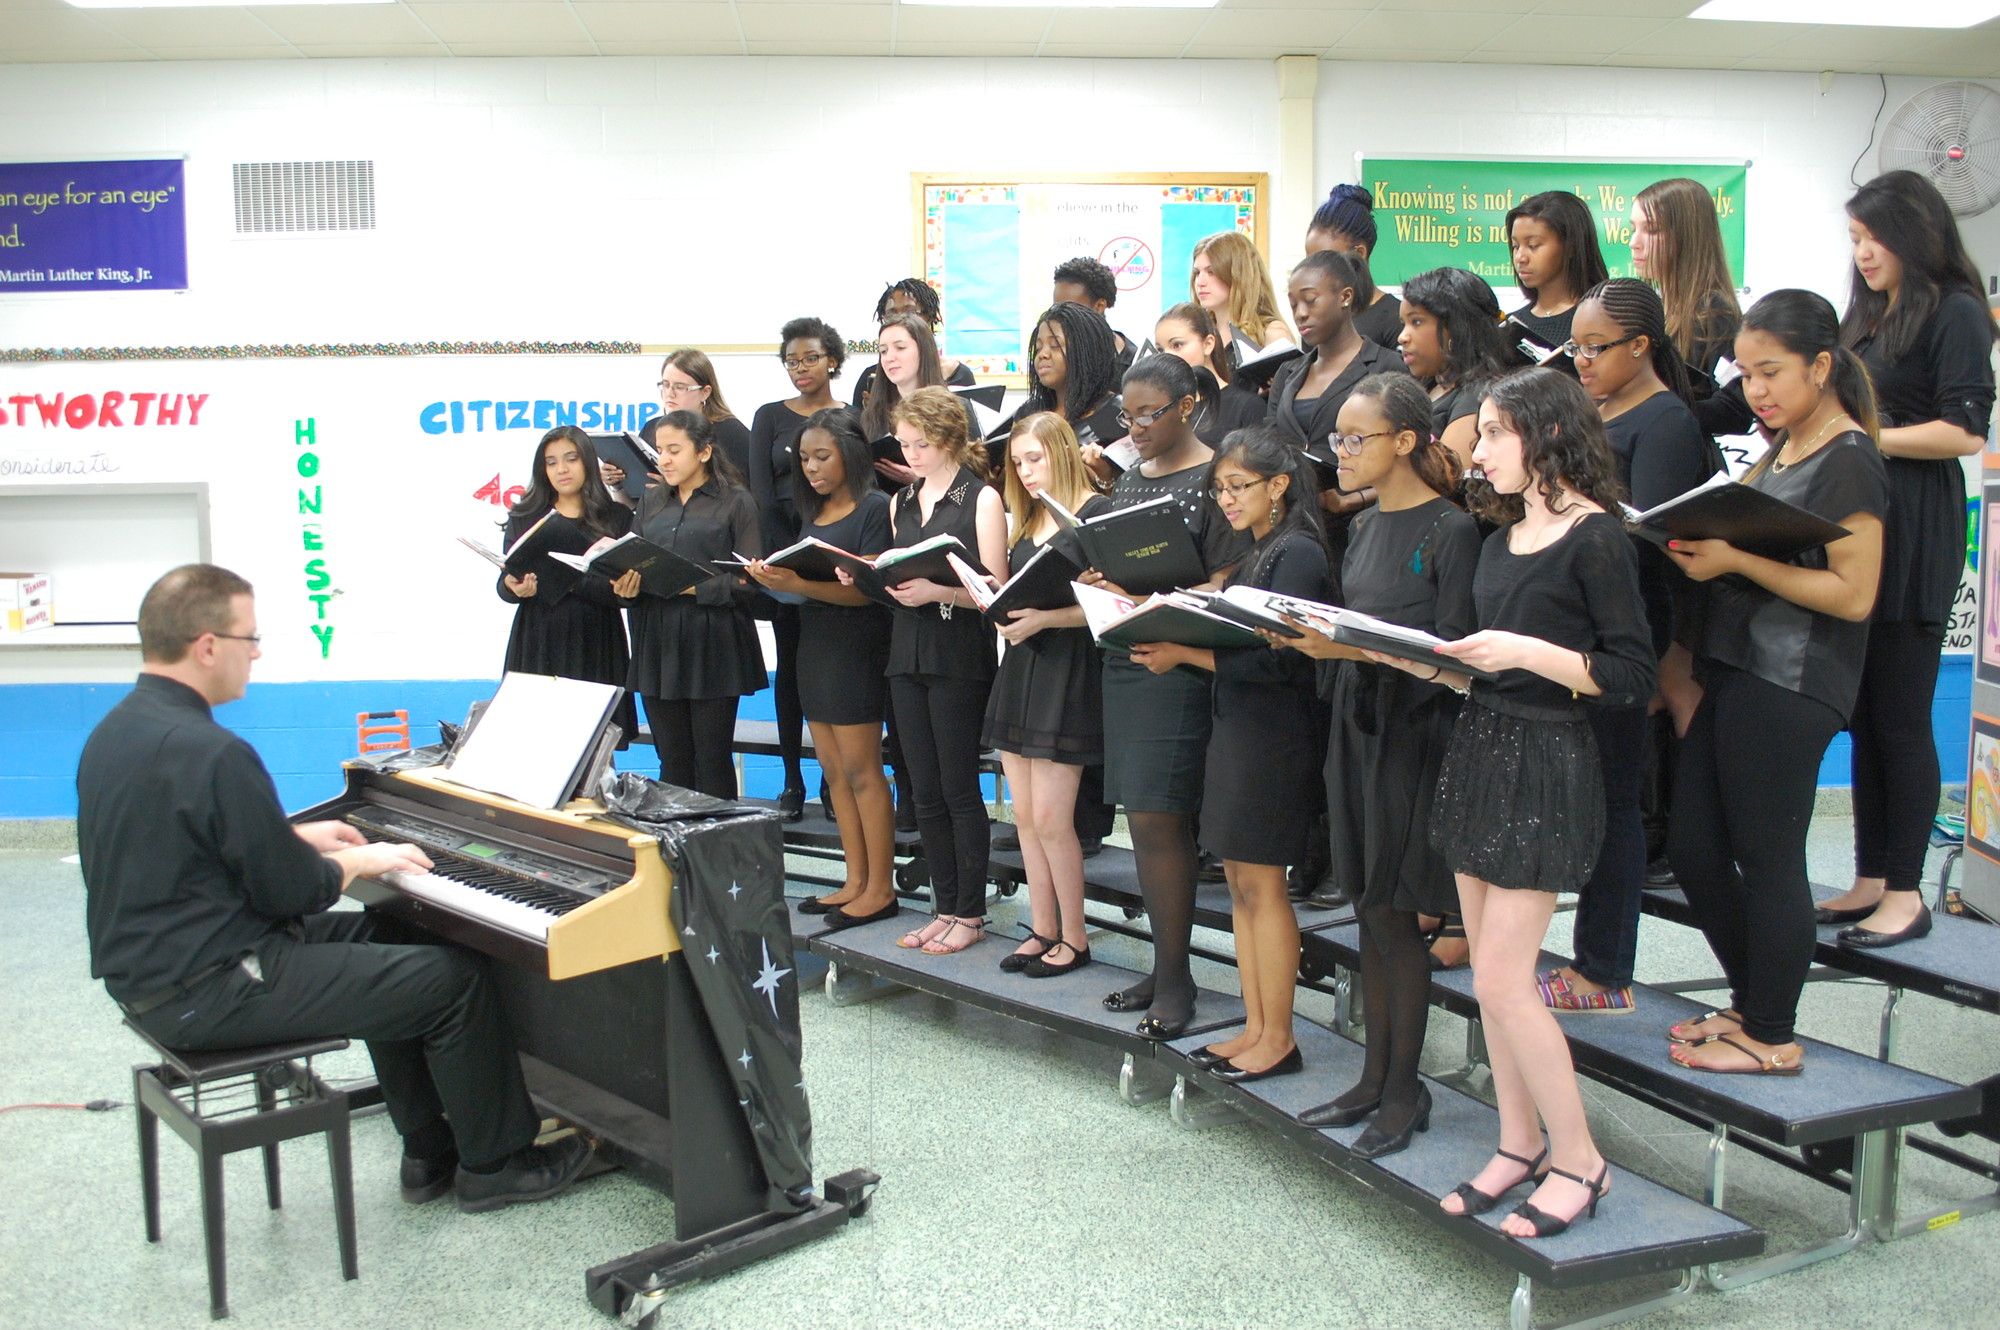 There were numerous musical presentations, including by the North High School Women's Choir.